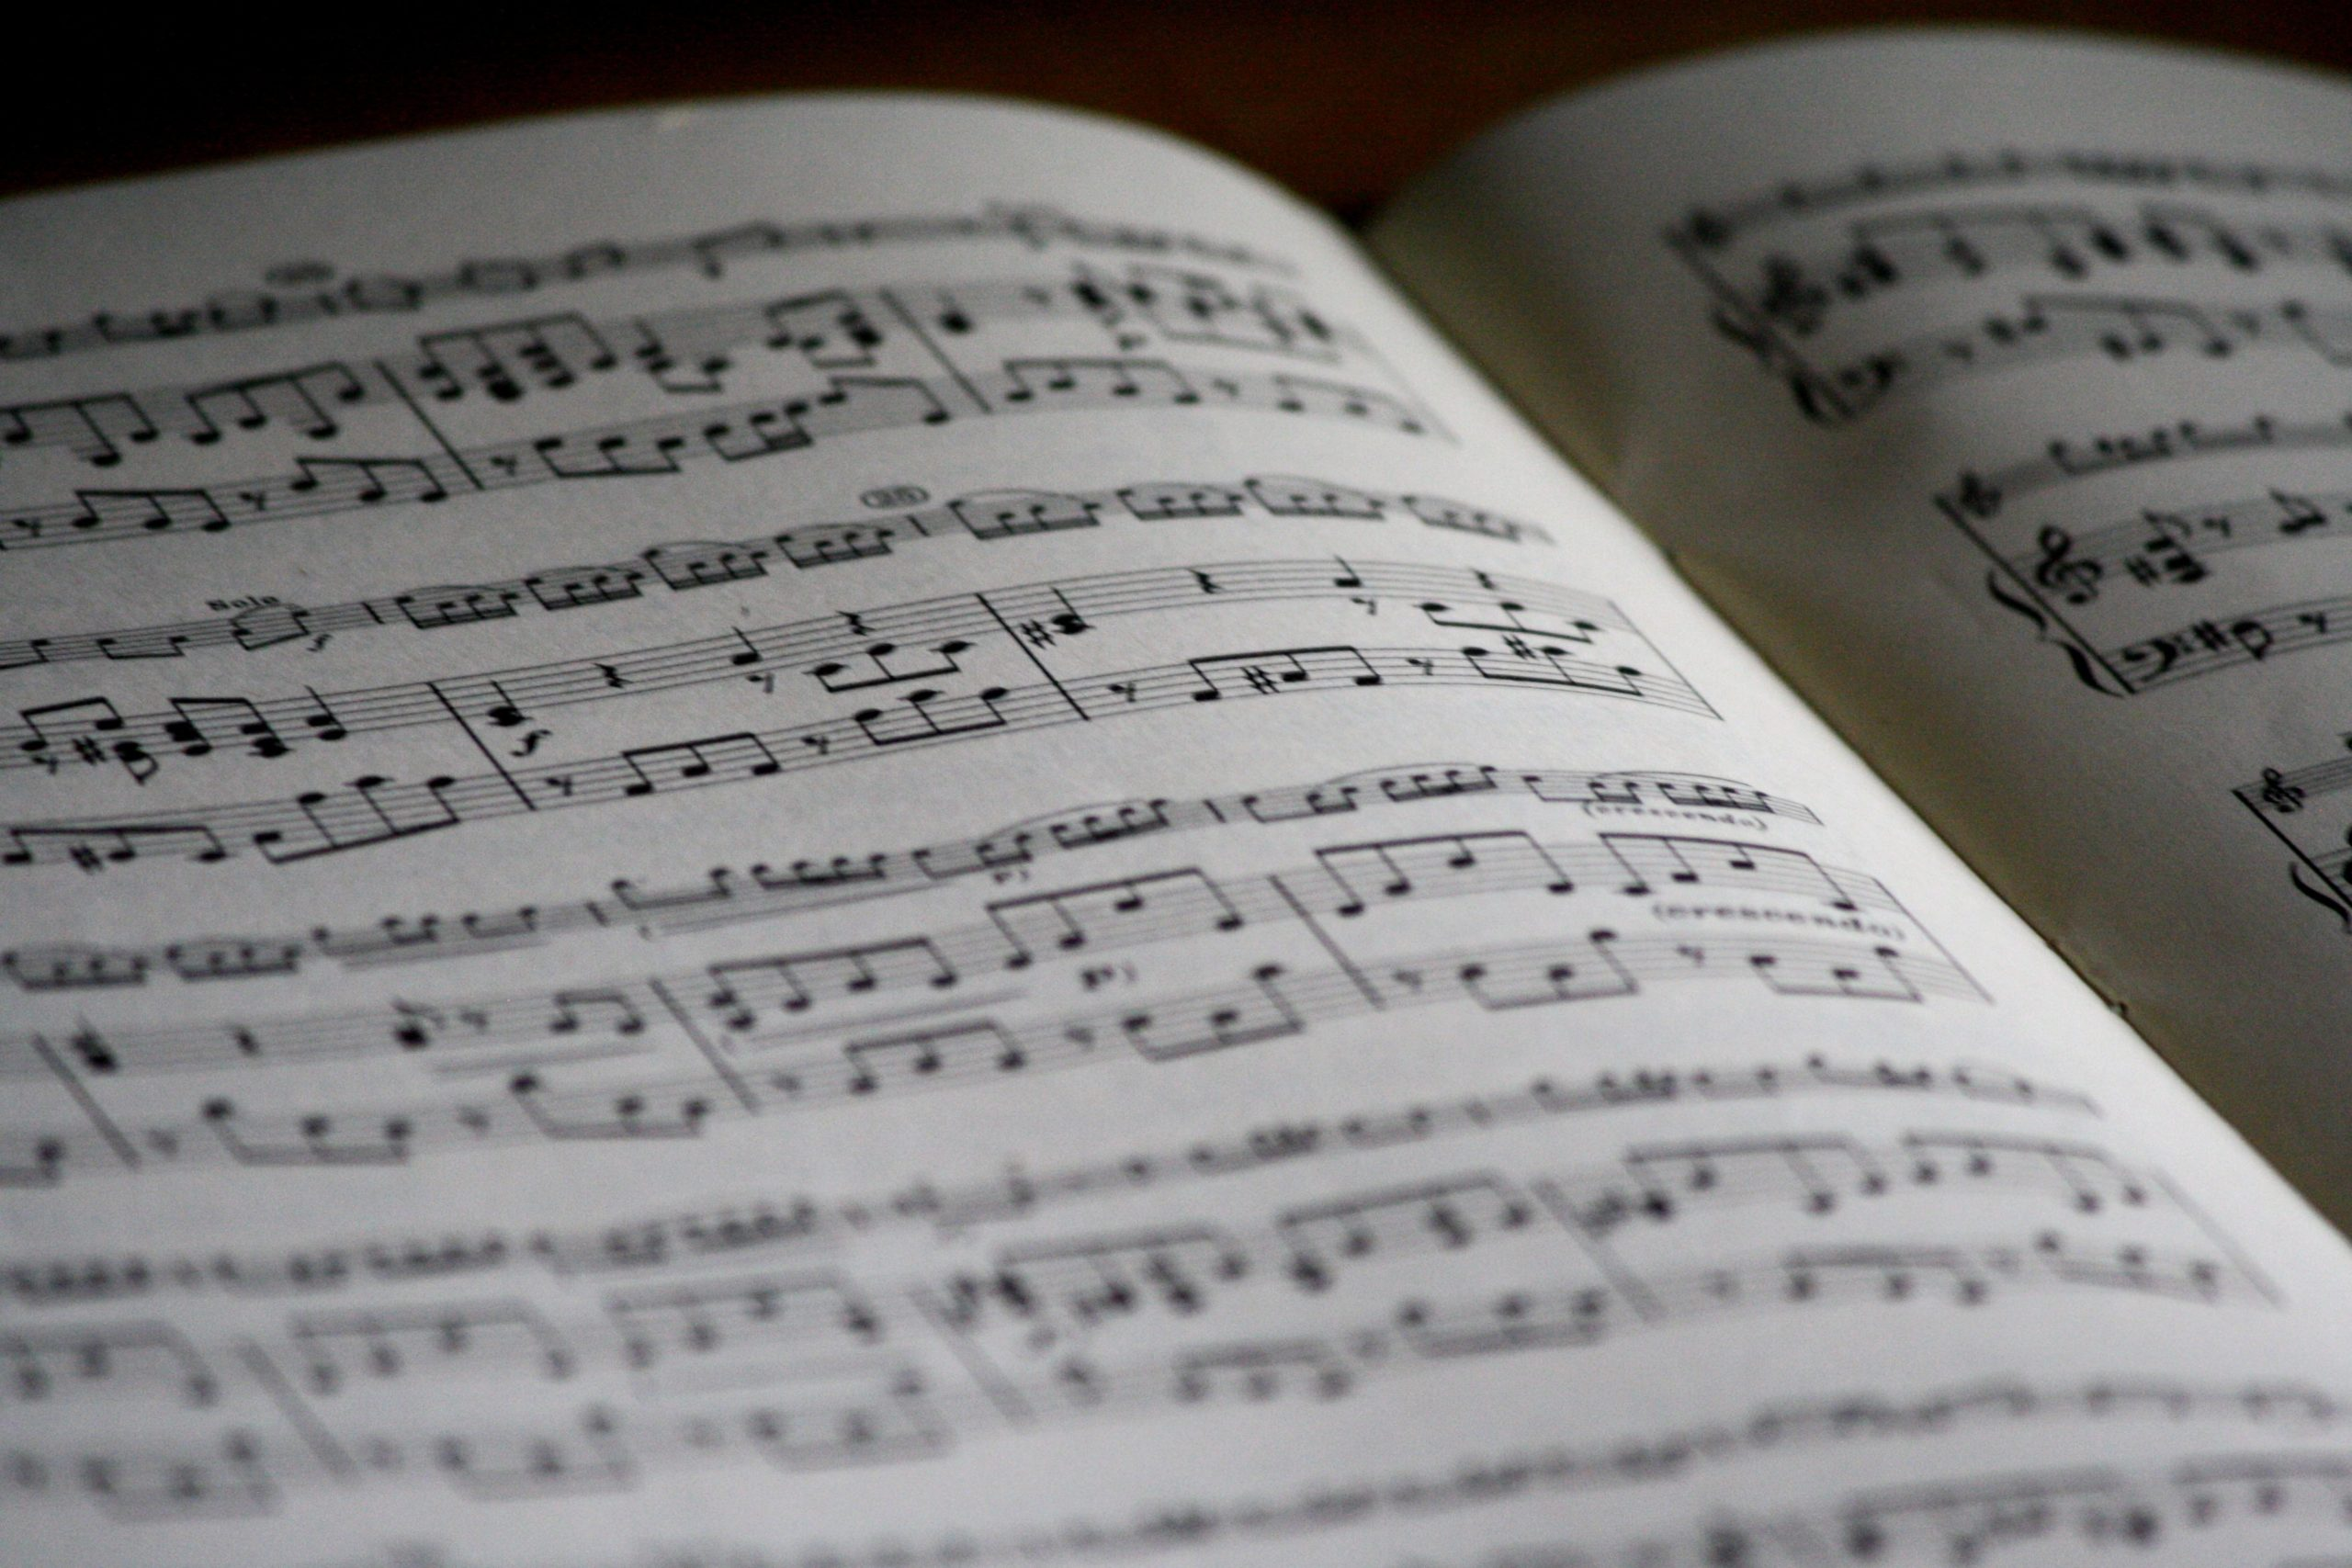 Top 3 Musical Instruments For Anxiety And Depression